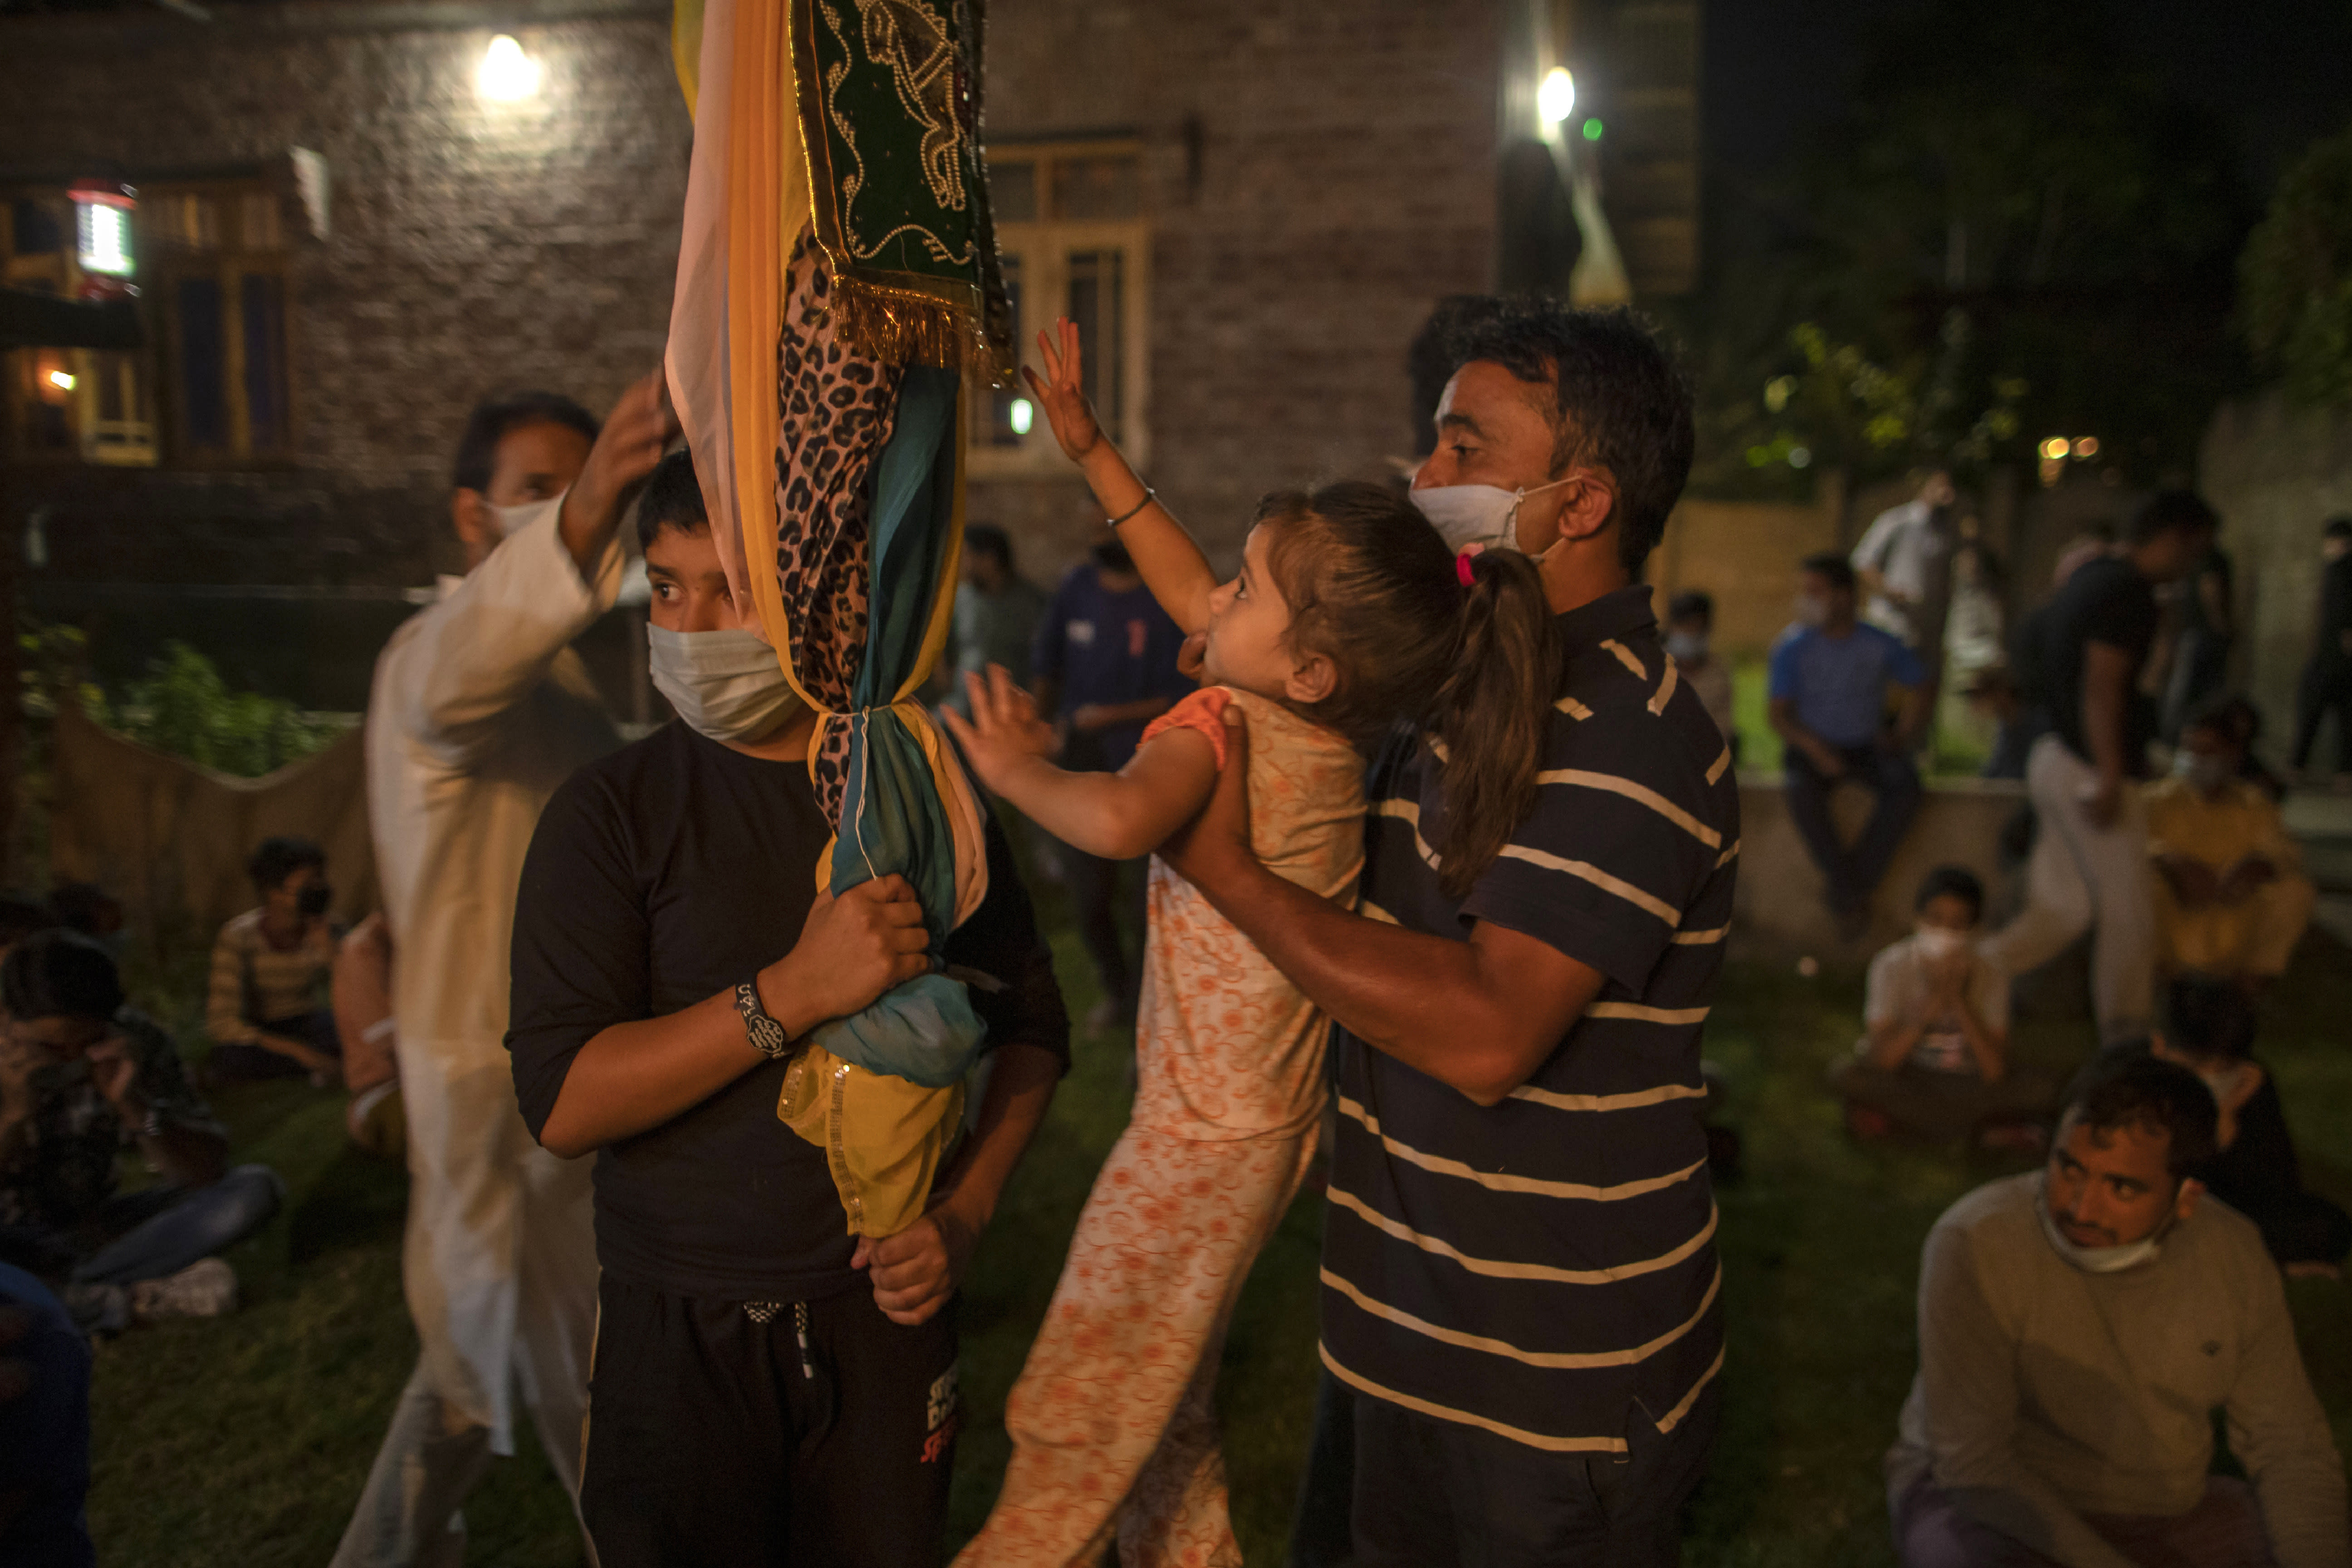 A Kashmiri Shiite Muslim helps her daughter to touch the religious flag at of the ceremony commemorating Muharram inside the lawn of a residential house in Srinagar Indian-controlled Kashmir, Friday, Aug. 21, 2020. Observing the Muslim month of Muharram, which marks the martyrdom of the Prophet Muhammad's grandson in the battle of Karbala, is an article of faith. But as the coronavirus spreads in Indian-controlled Kashmir, Shiite Muslims prefer to commemorate the holy days inside their home following the advice of religious scholars and health experts in the disputed region's main city. (AP Photo/ Dar Yasin)